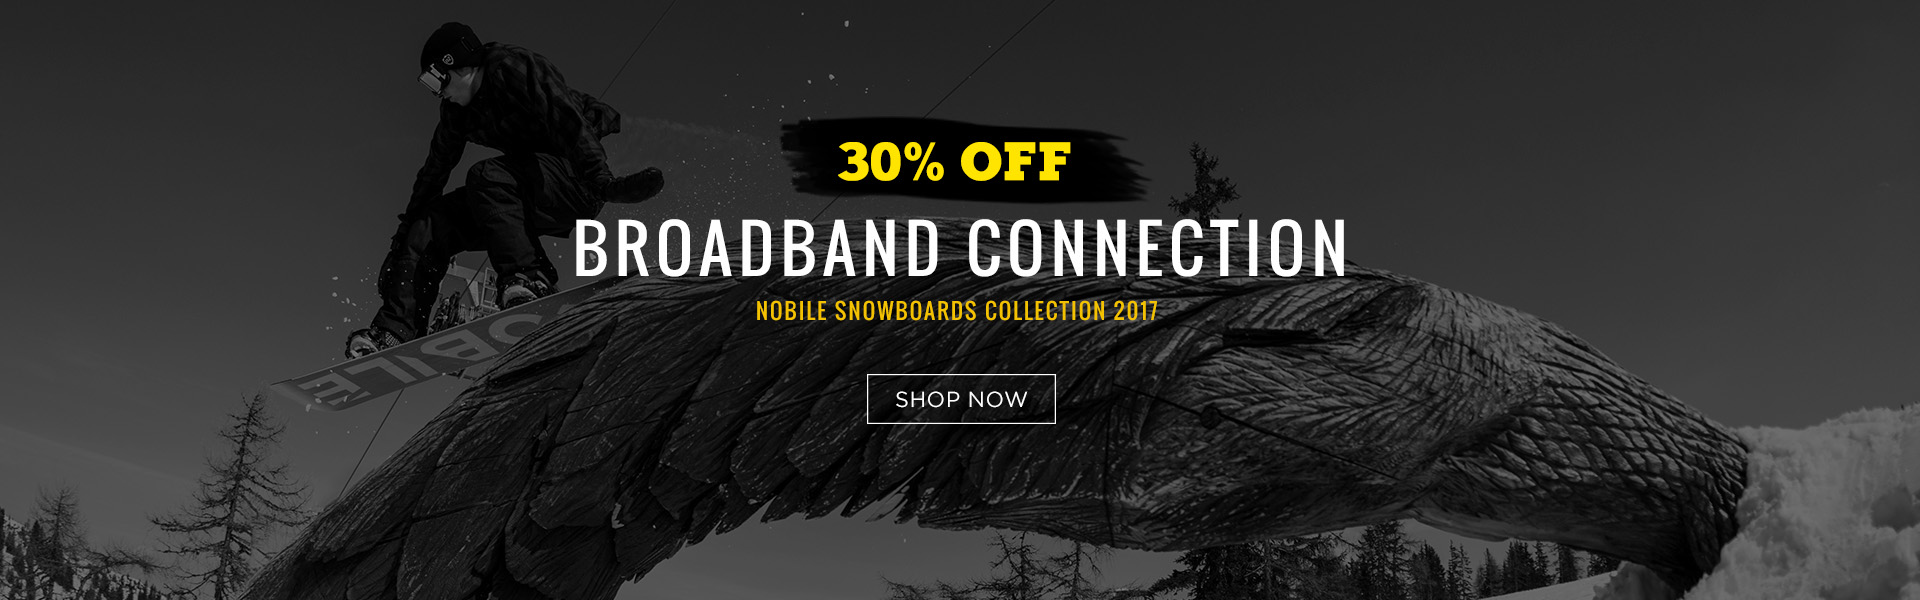 Snowboards Sale Broadband connection